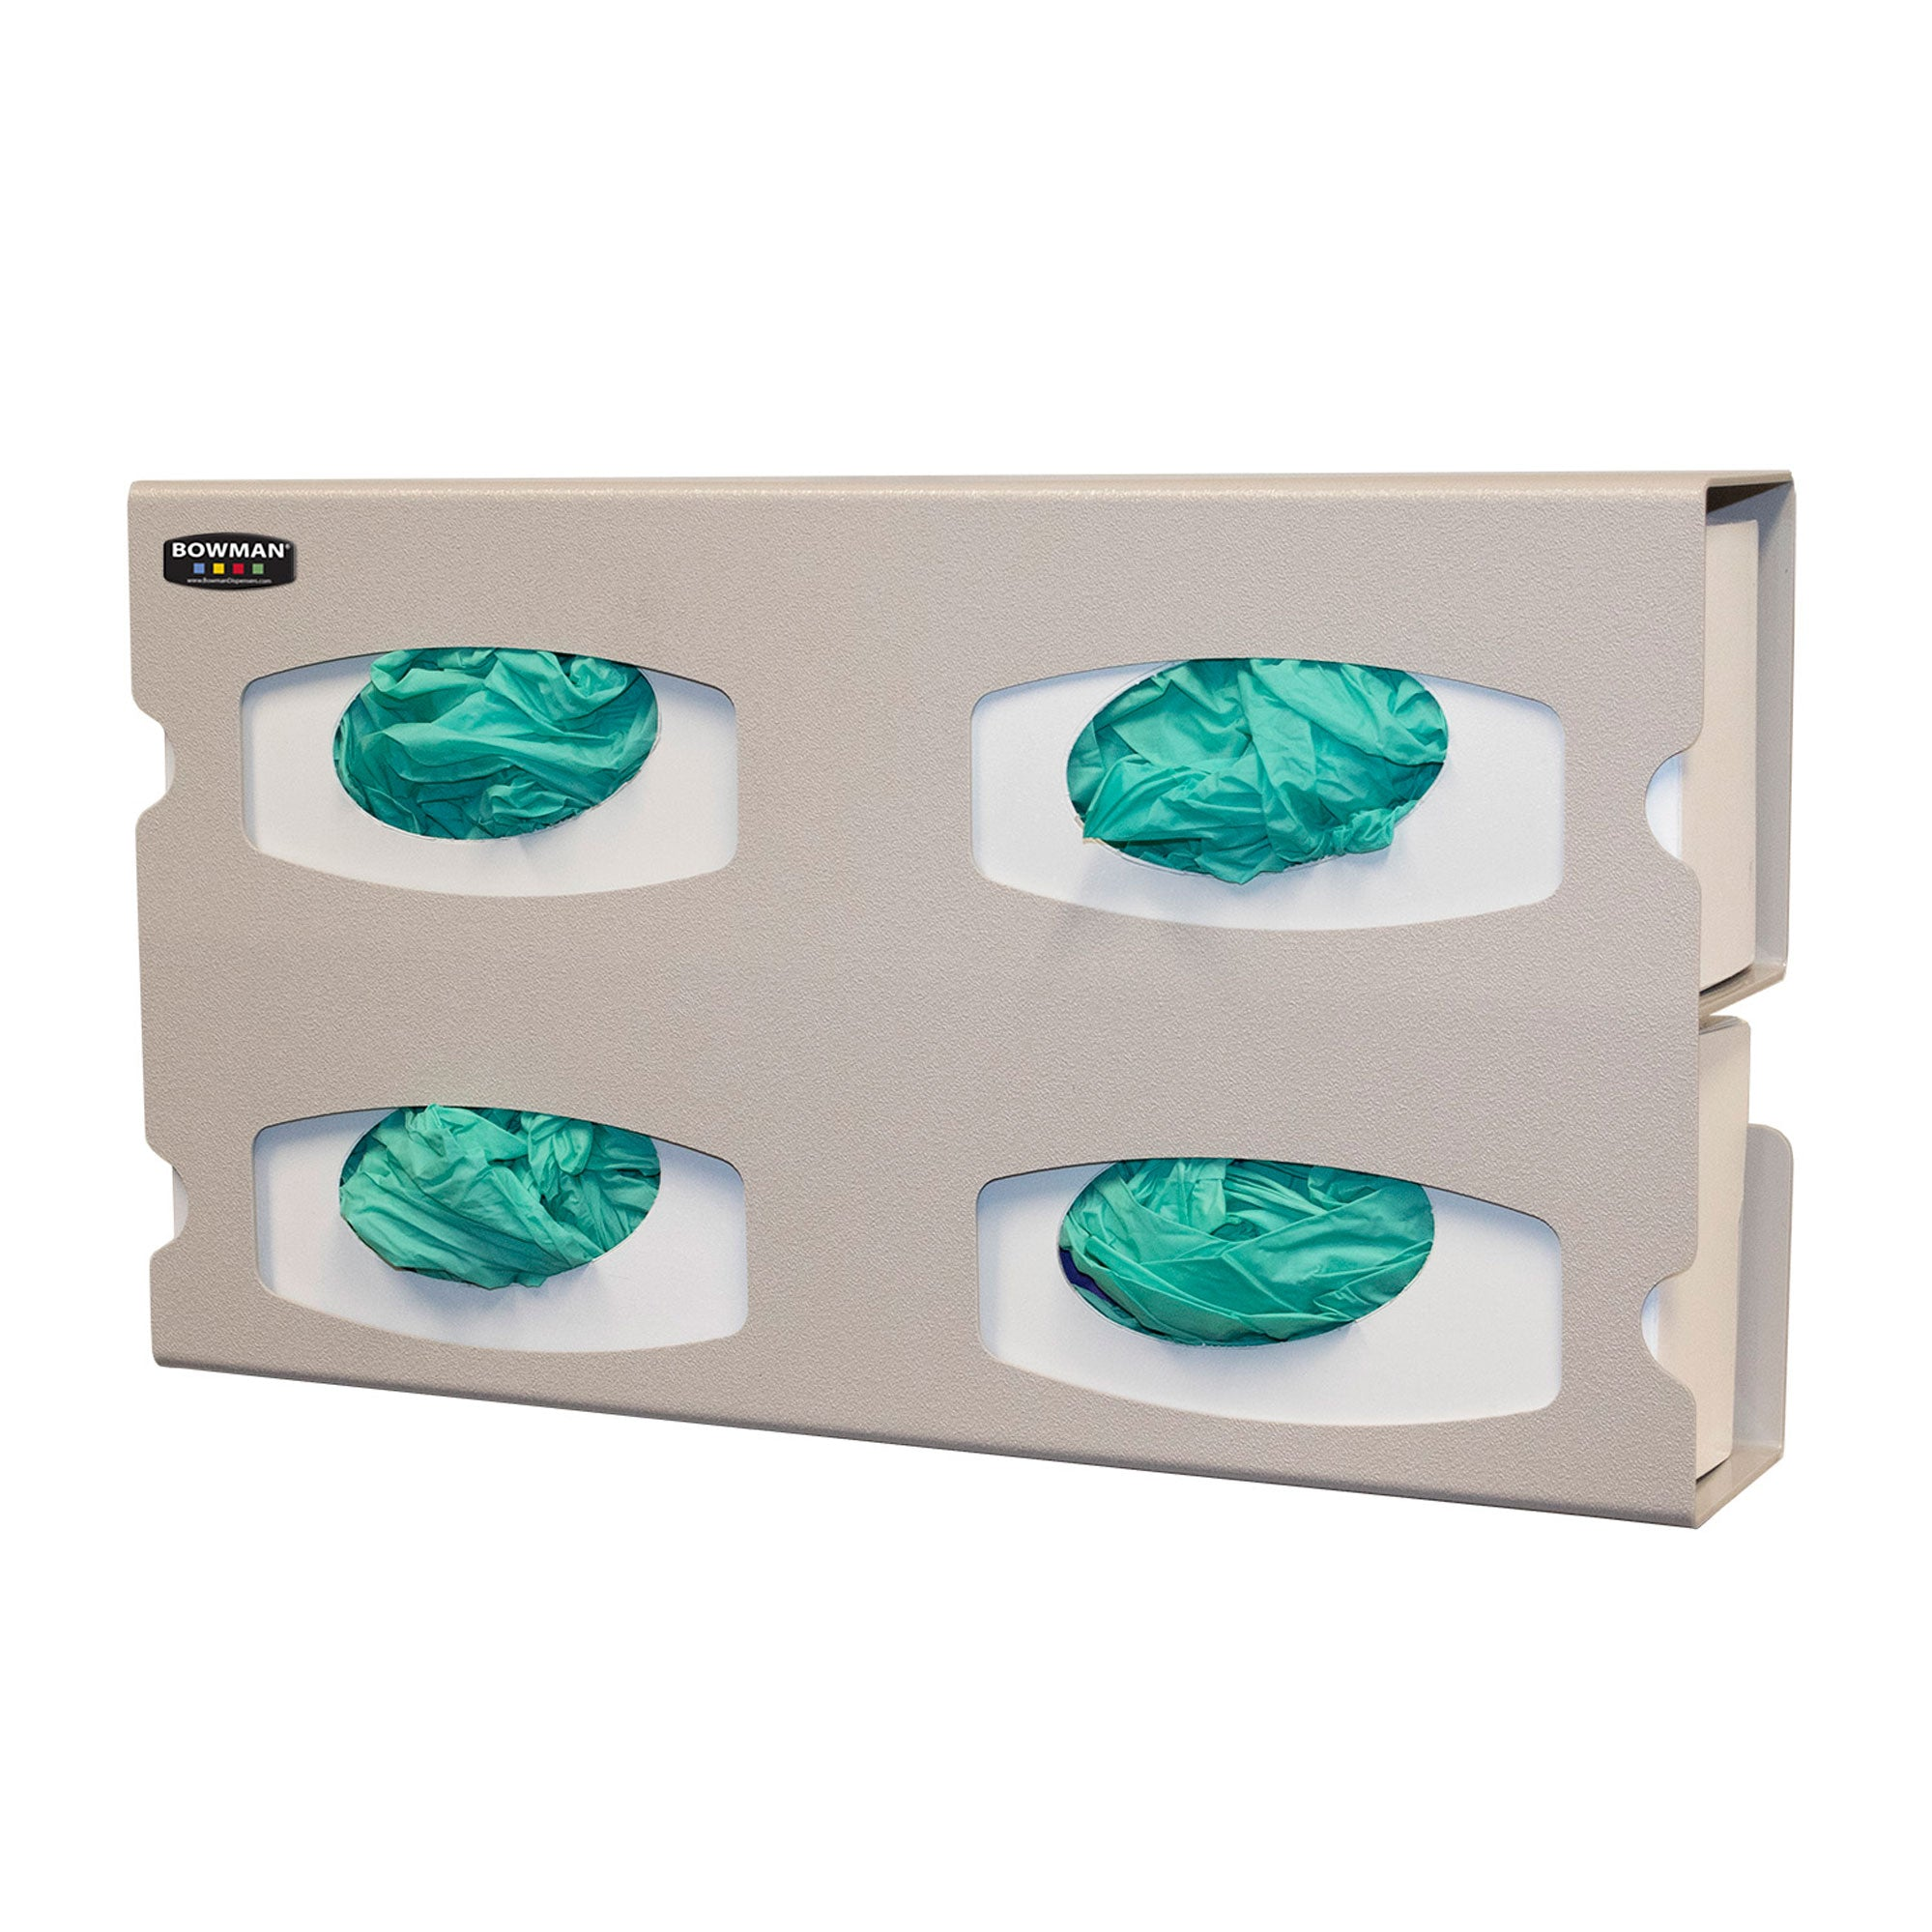 Bowman ABS Premium Quad Glove Box Dispenser